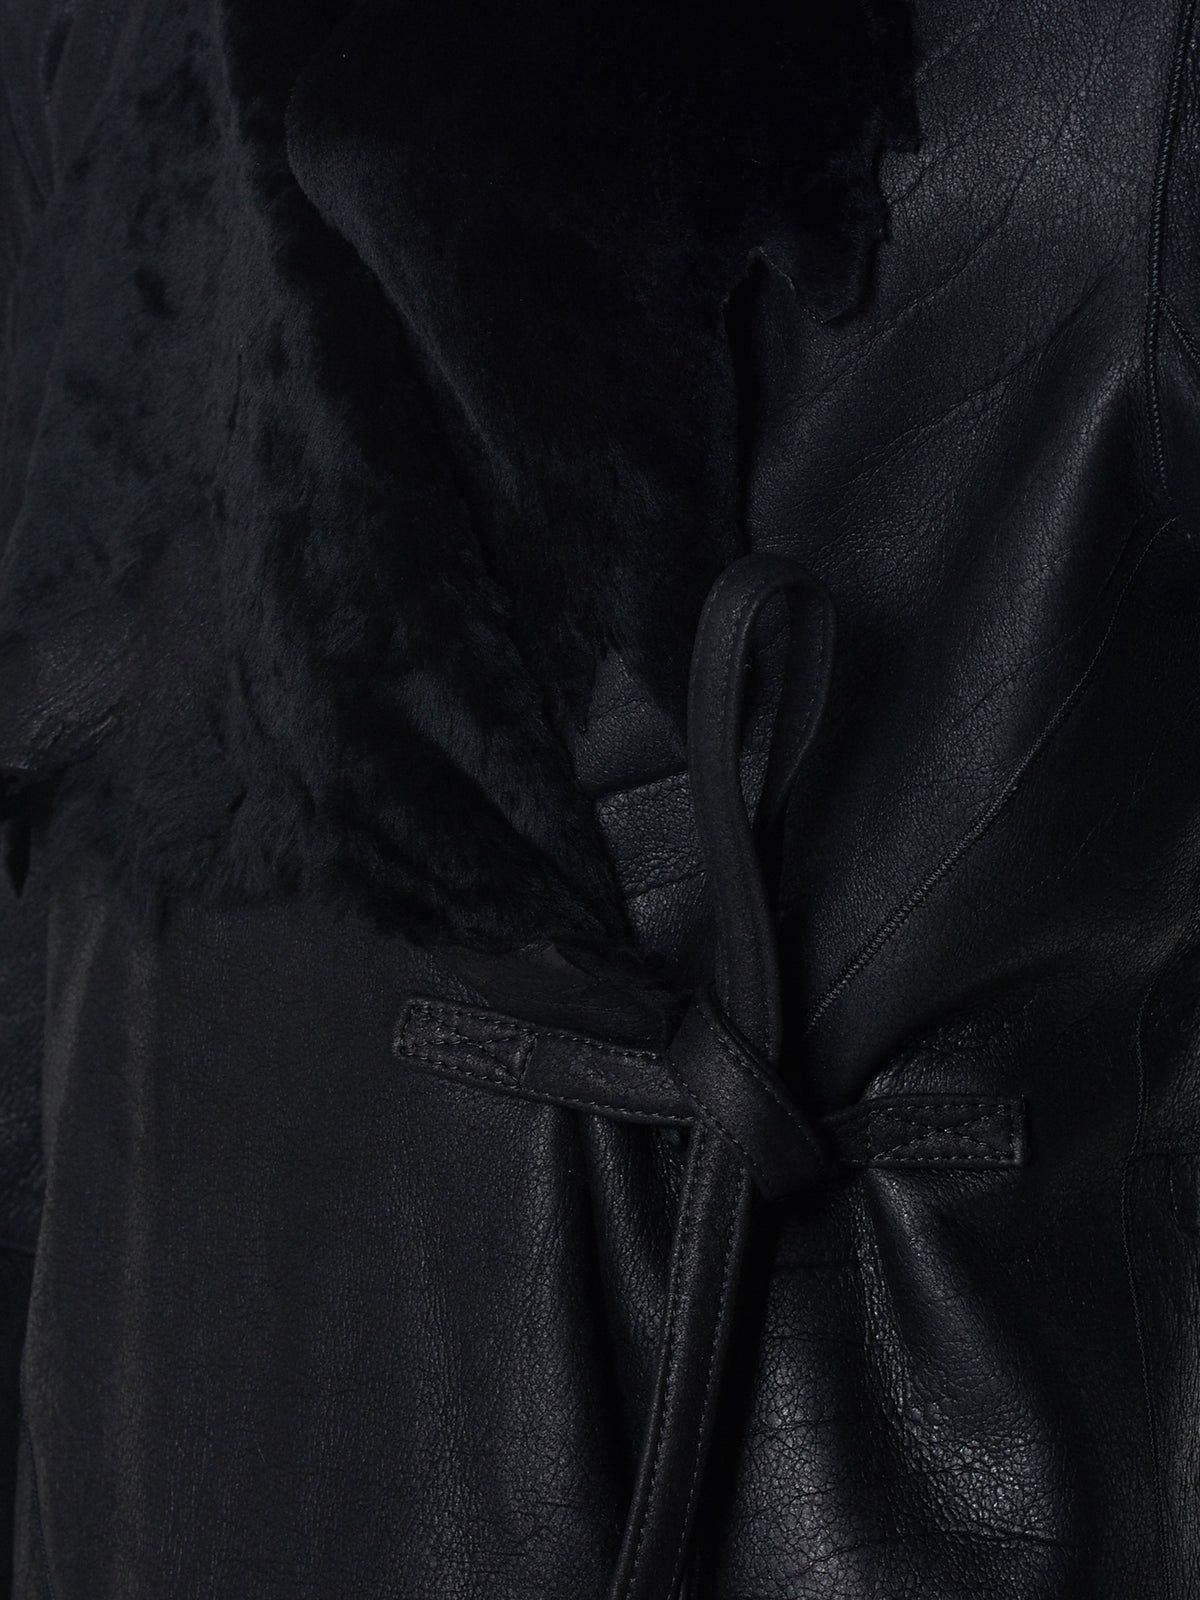 Ann Demeulemeester Leather Jacket - Hlorenzo Detail 2